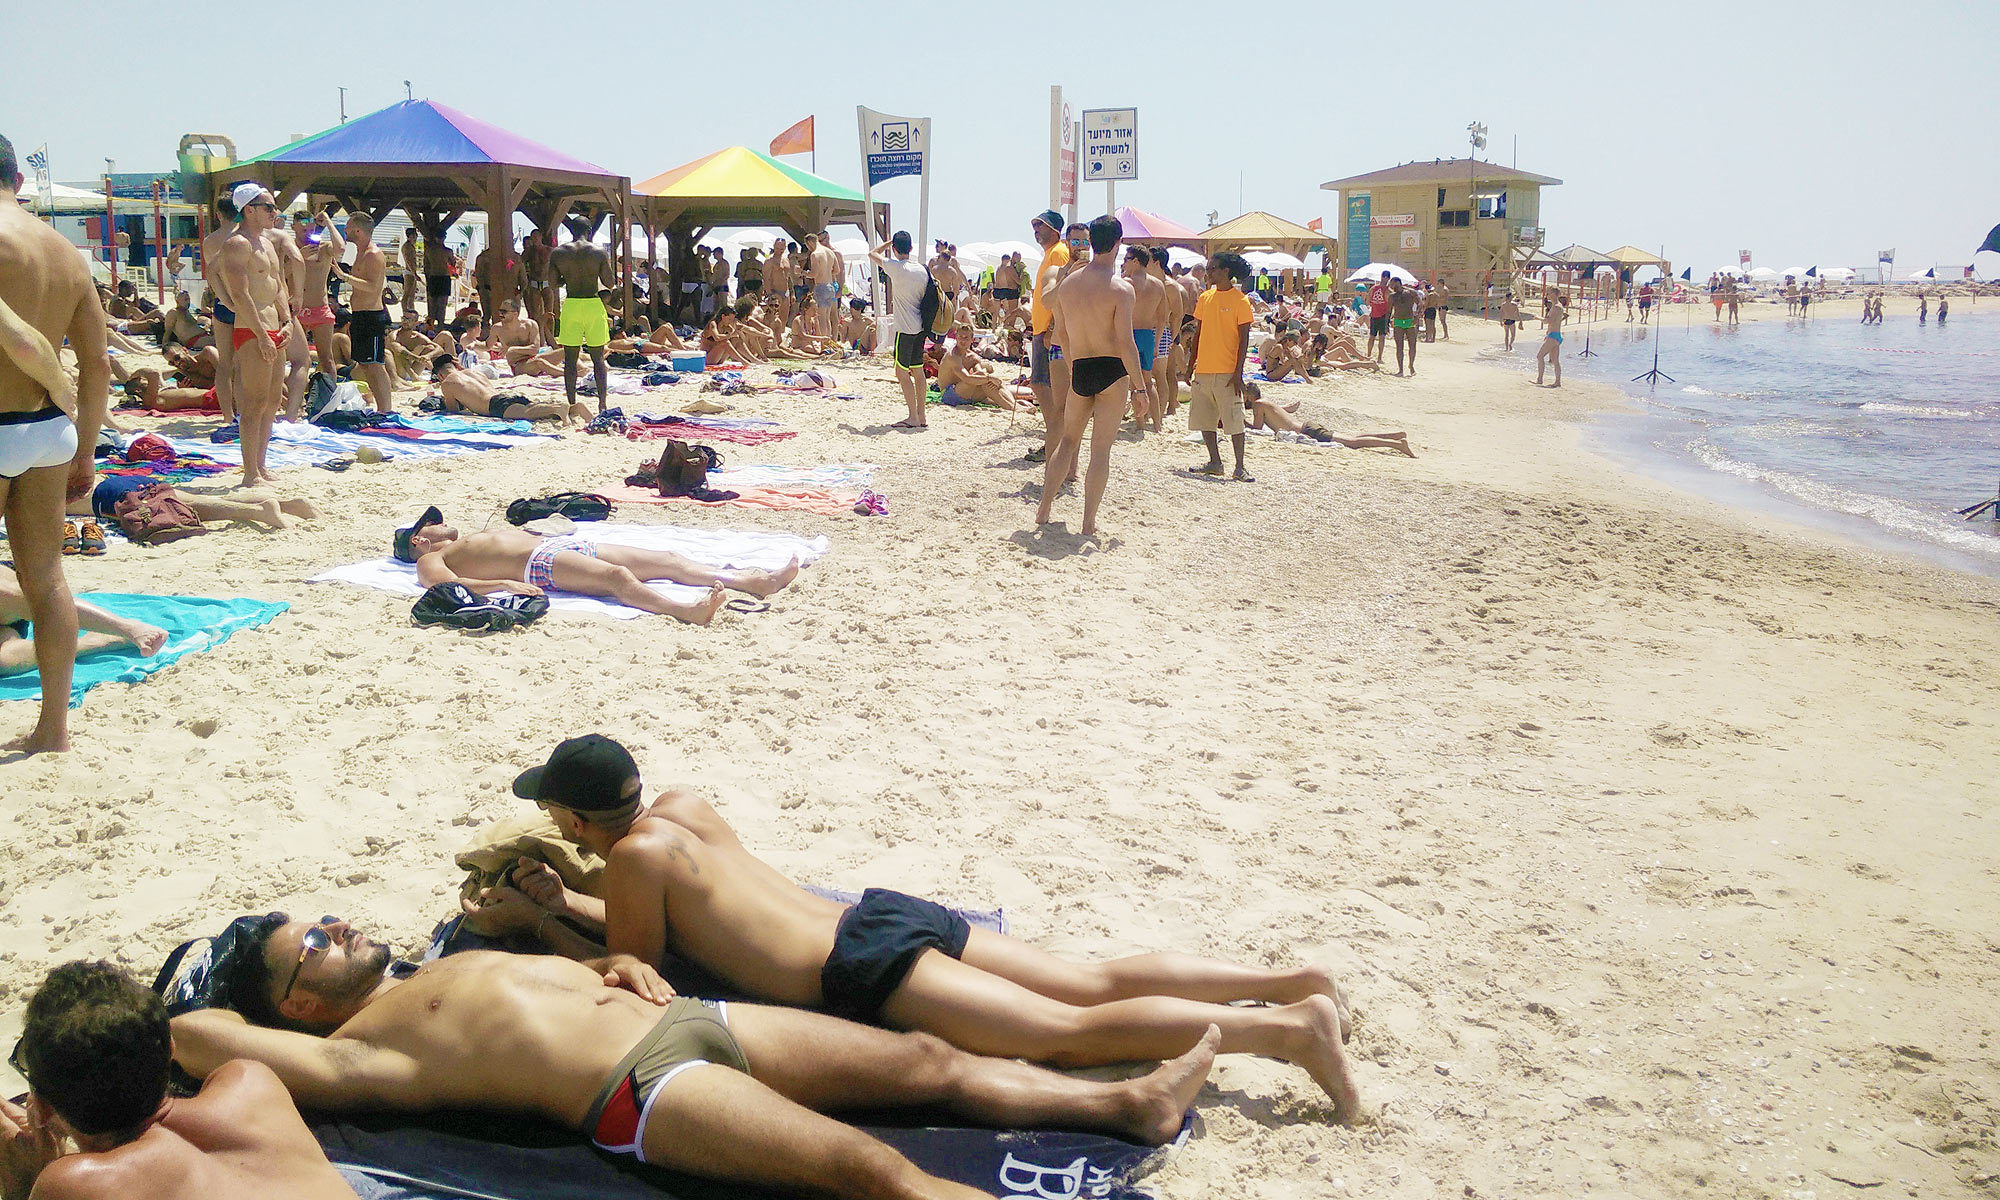 many men sunbathe or stroll around the gay beach called Hilton Beach in Tel Aviv